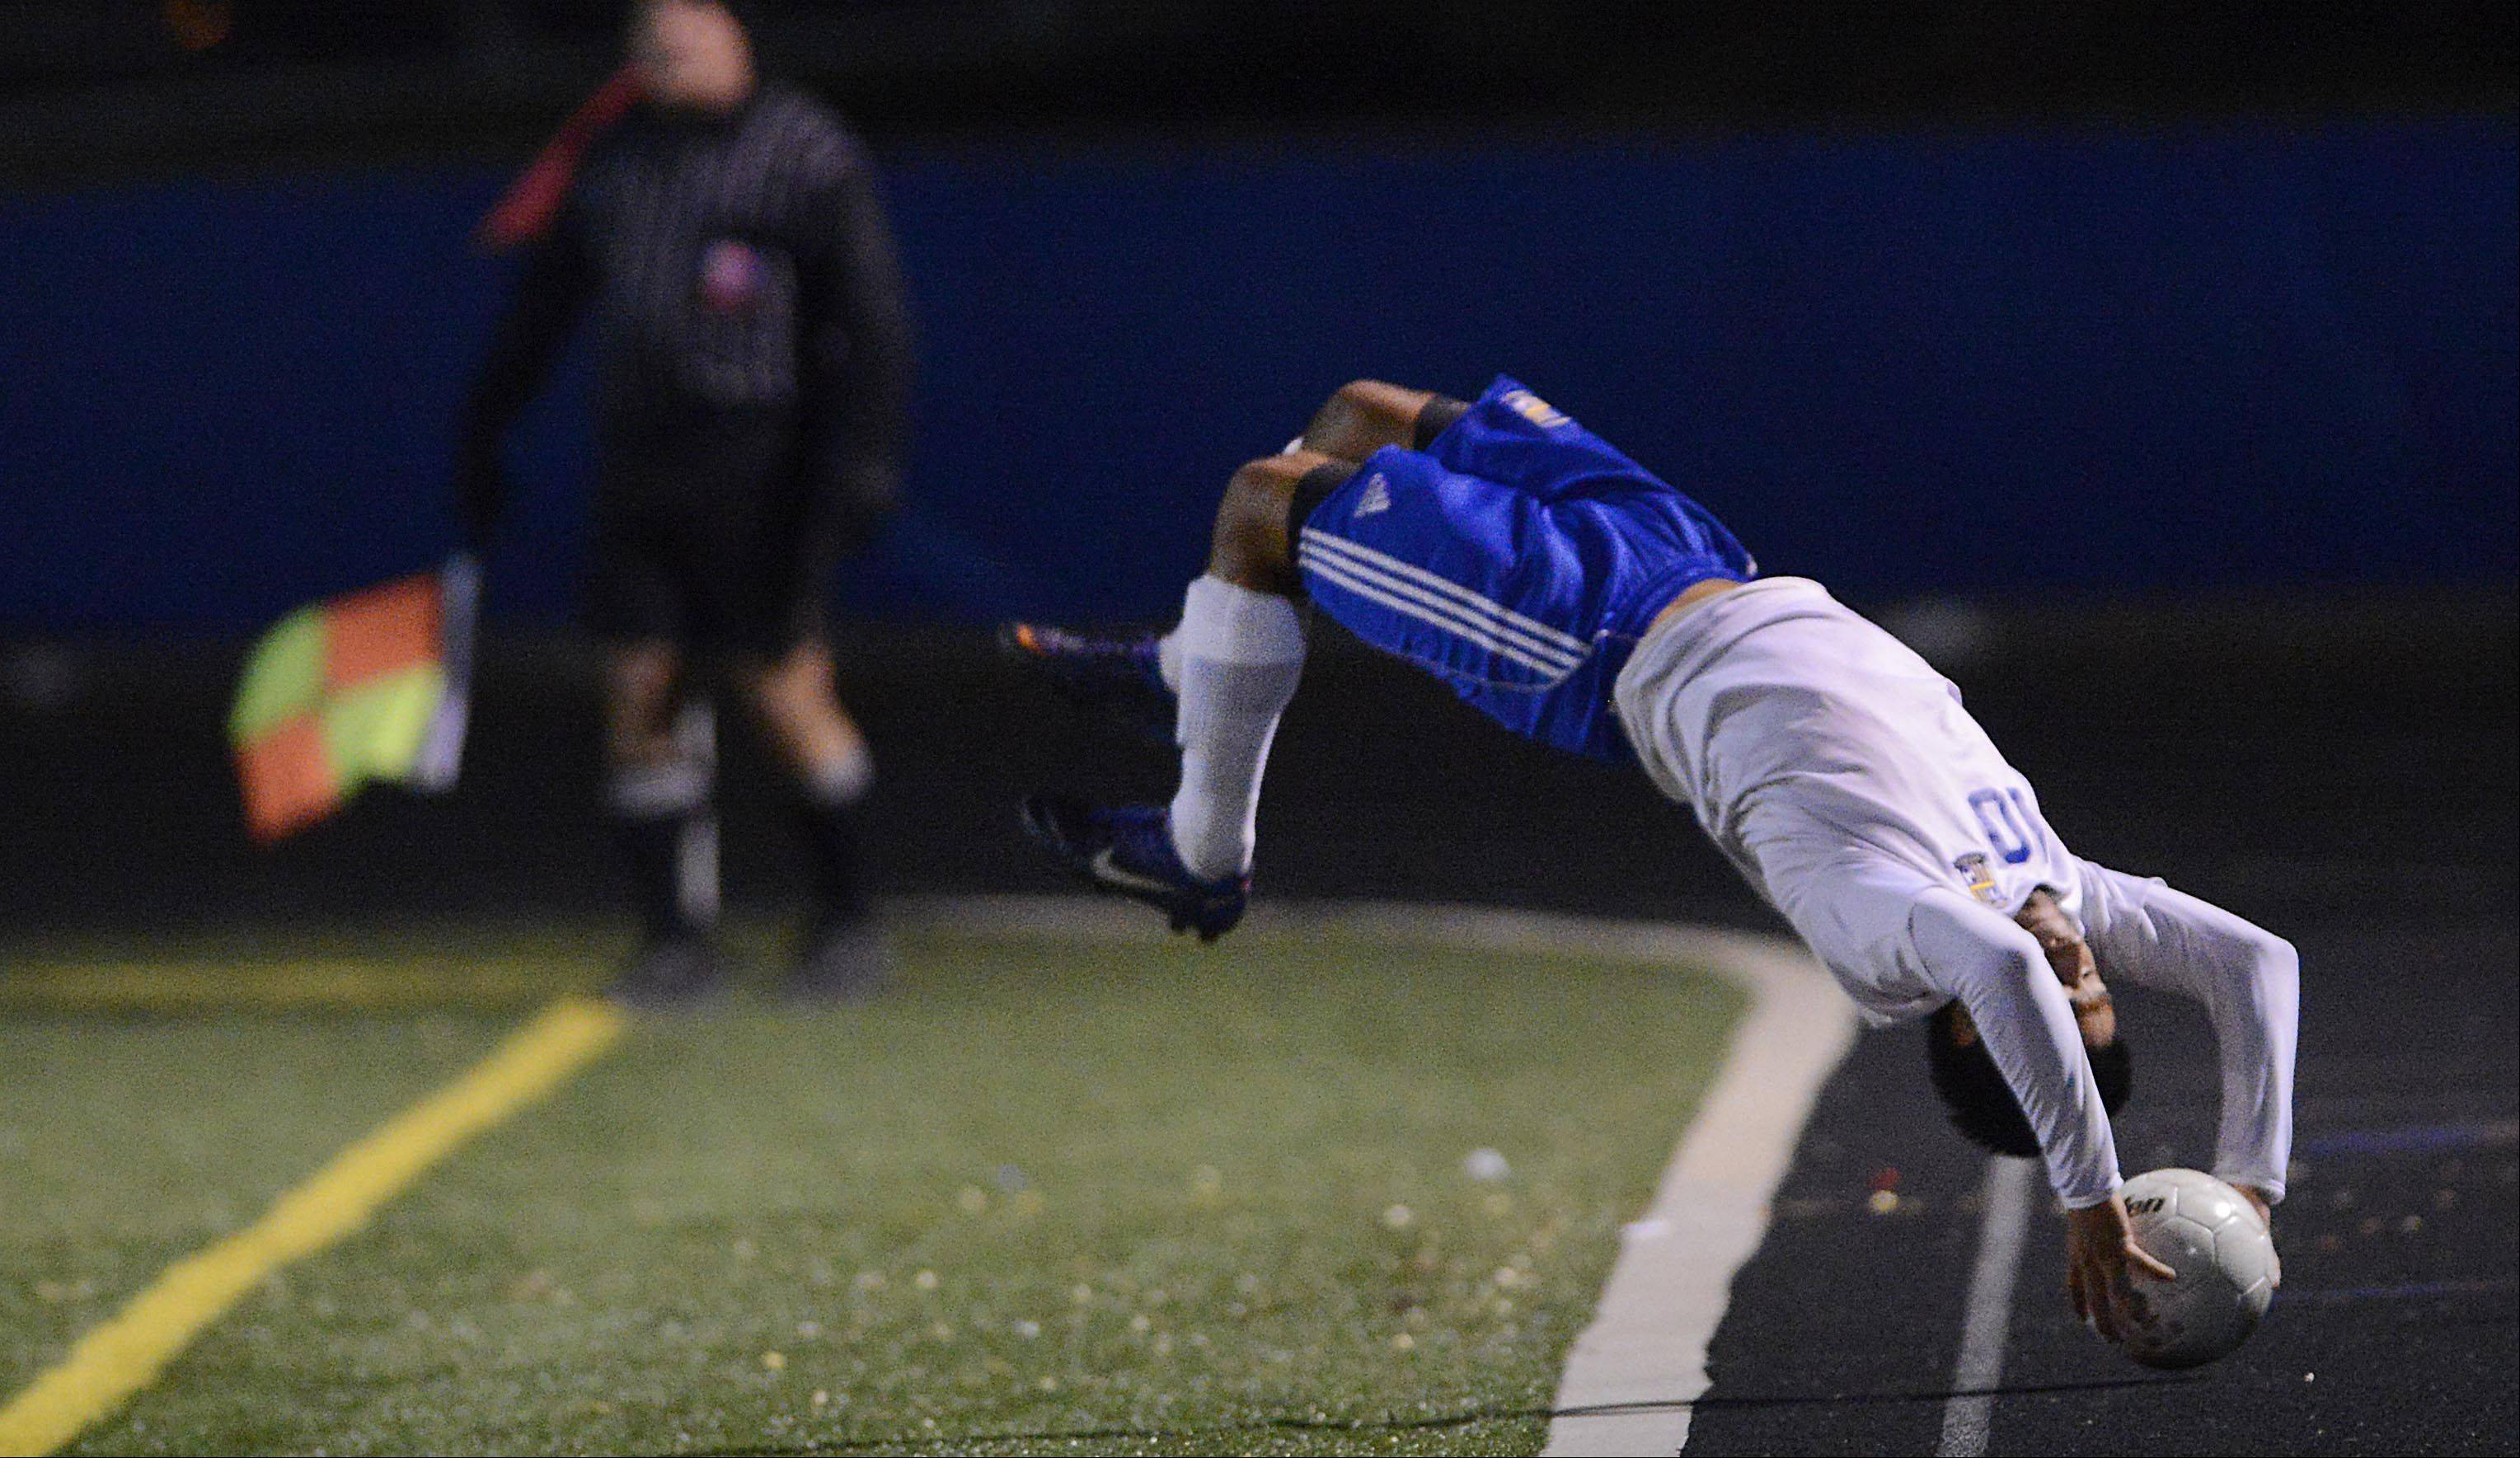 Wheeling's Ivan Mancillo flips the ball from the sidelines in the Class 3A soccer state championship game Saturday night in Hoffman Estates.